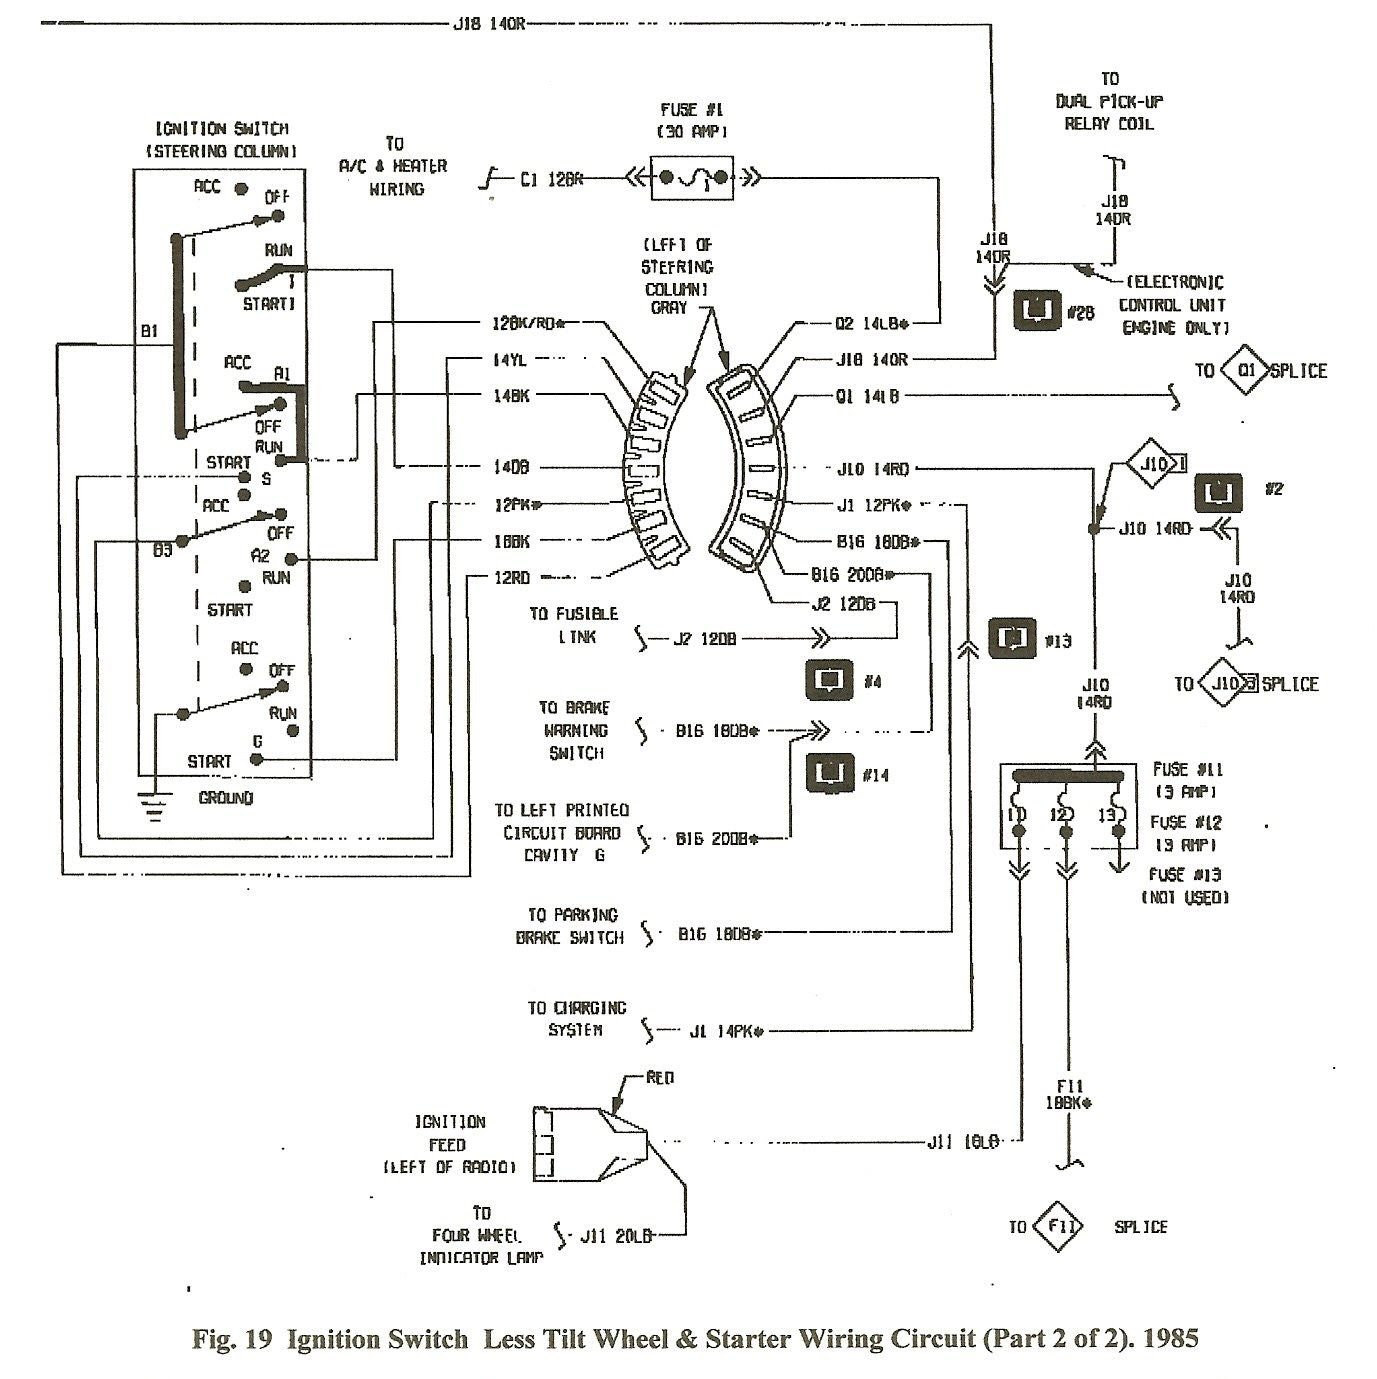 1986 Dodge Ignition Wiring Diagram